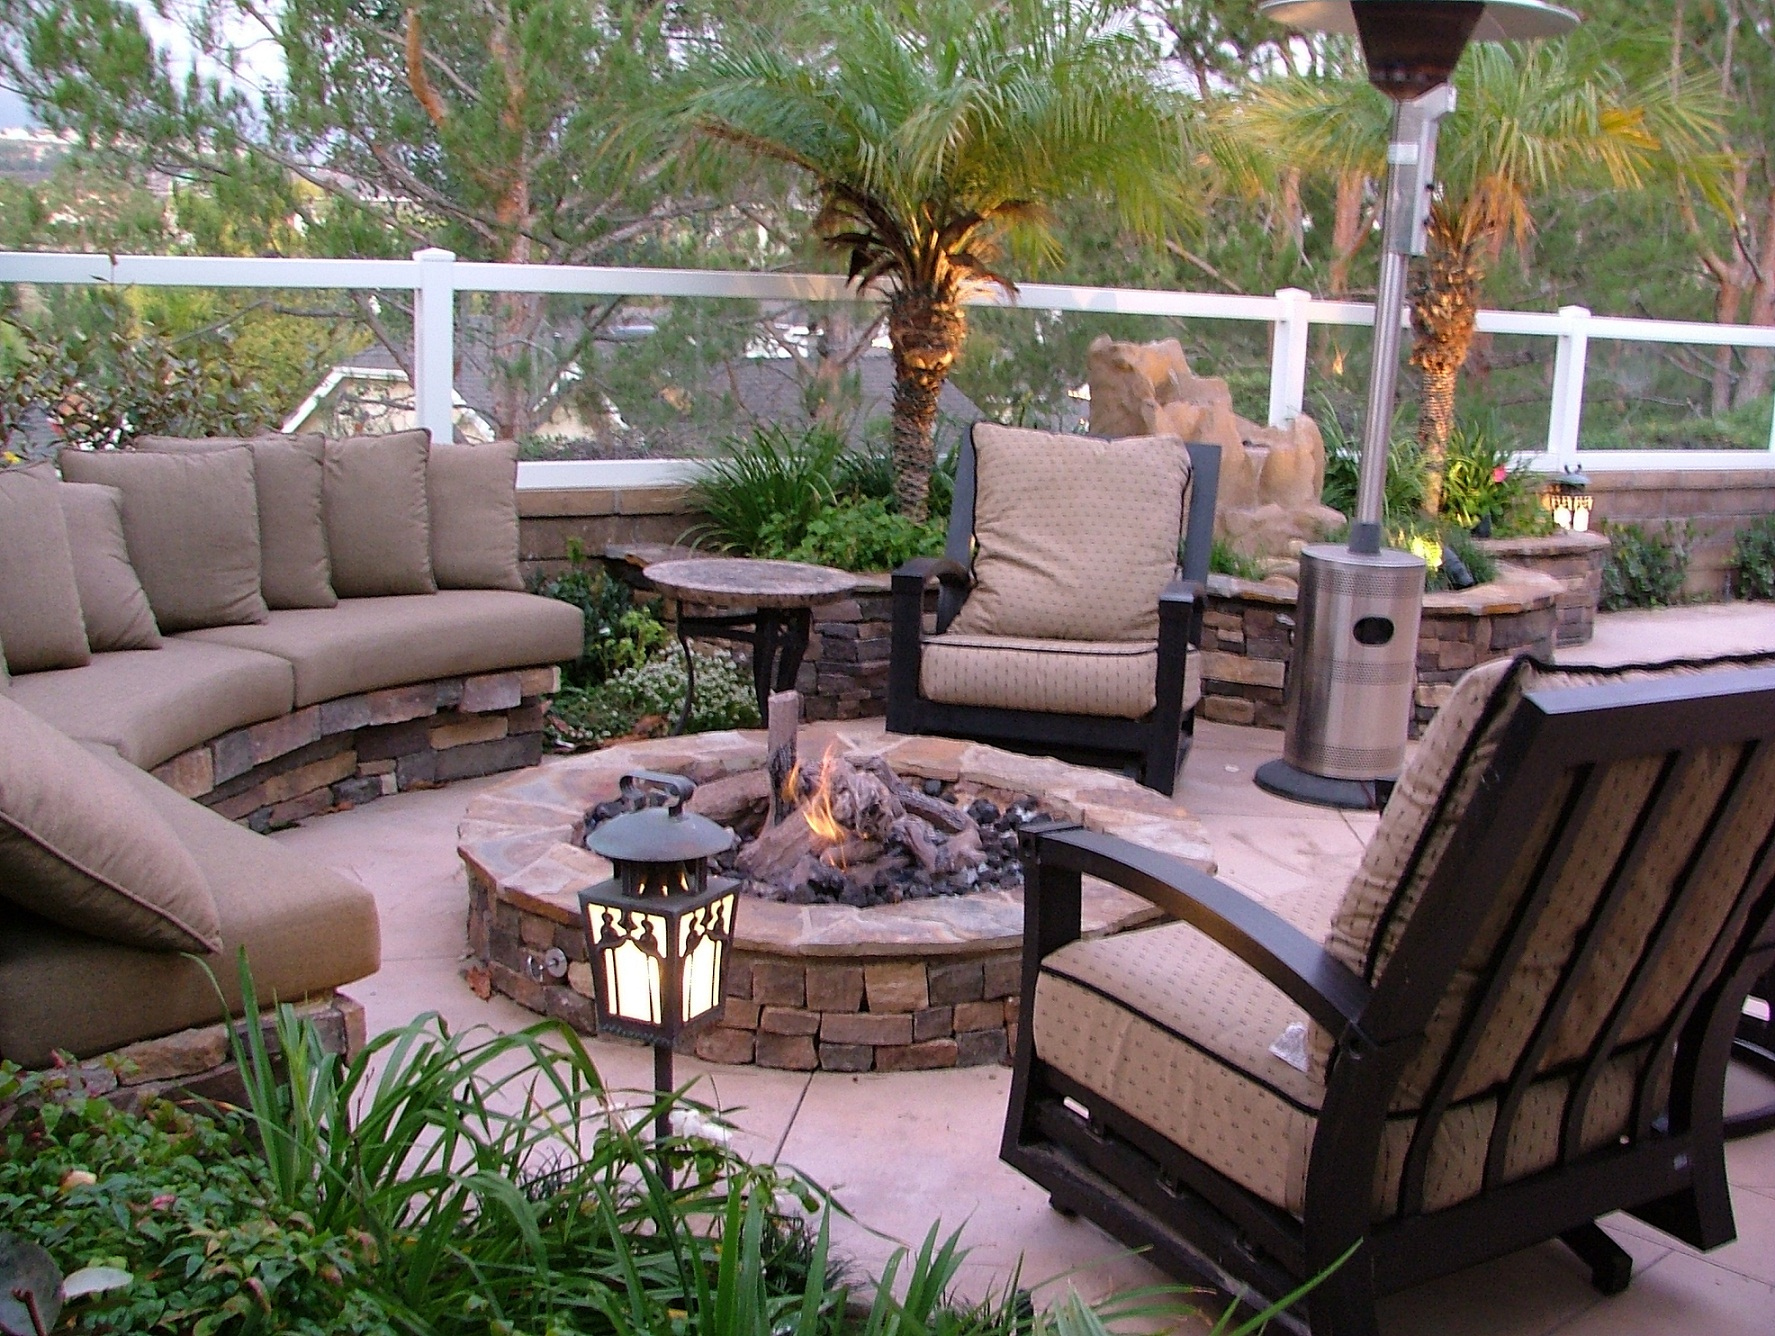 Funeral Home Makeover | Updates For Progressive Funeral ... on Back Patio Ideas On A Budget id=75135